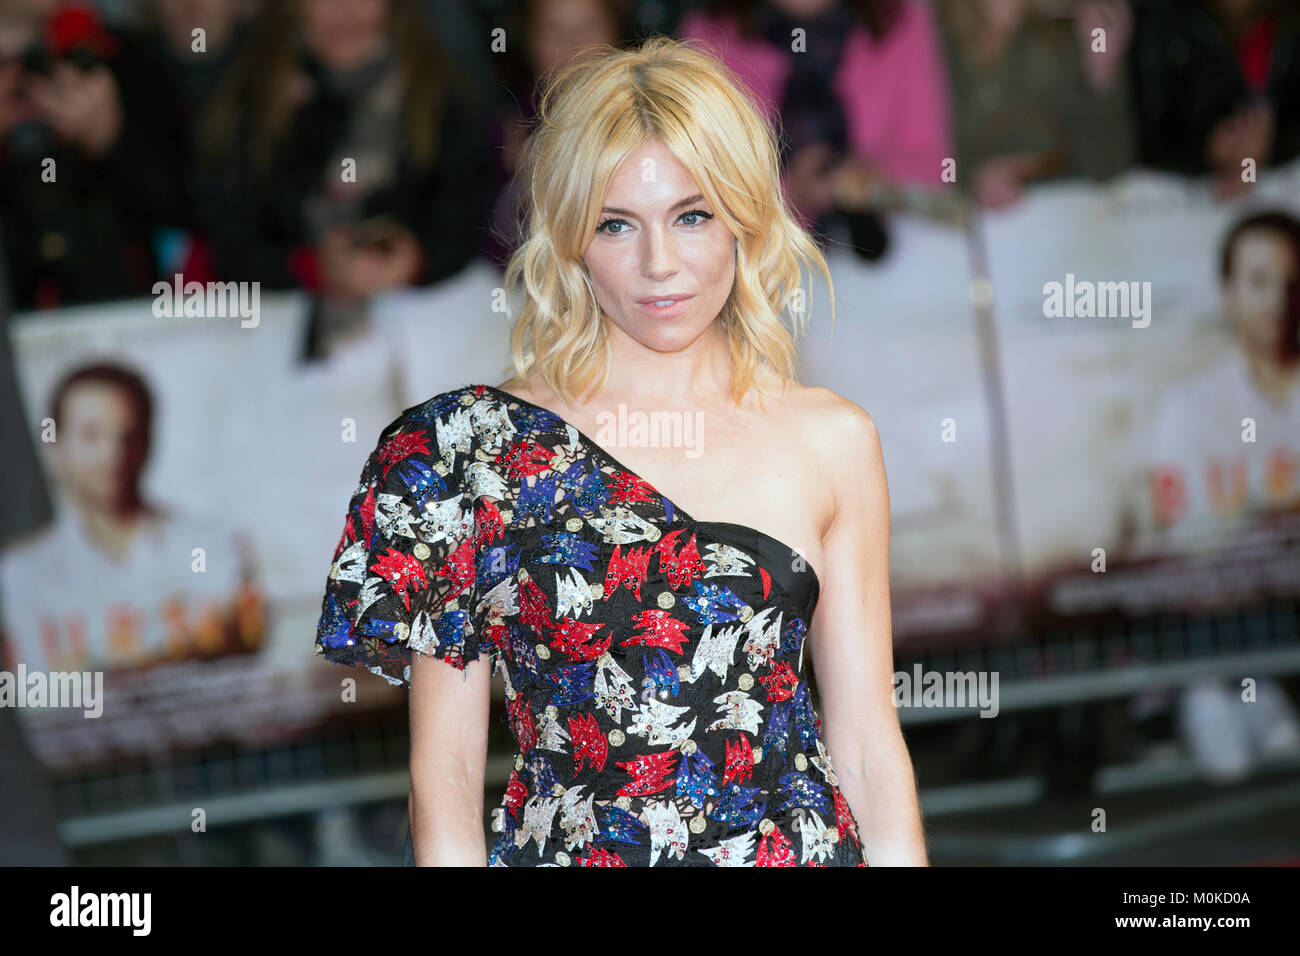 London, UK, 28 October 2015, Sienna Miller, European Film premiere of 'Burnt' at Vue West End Cinema. Mariusz - Stock Image